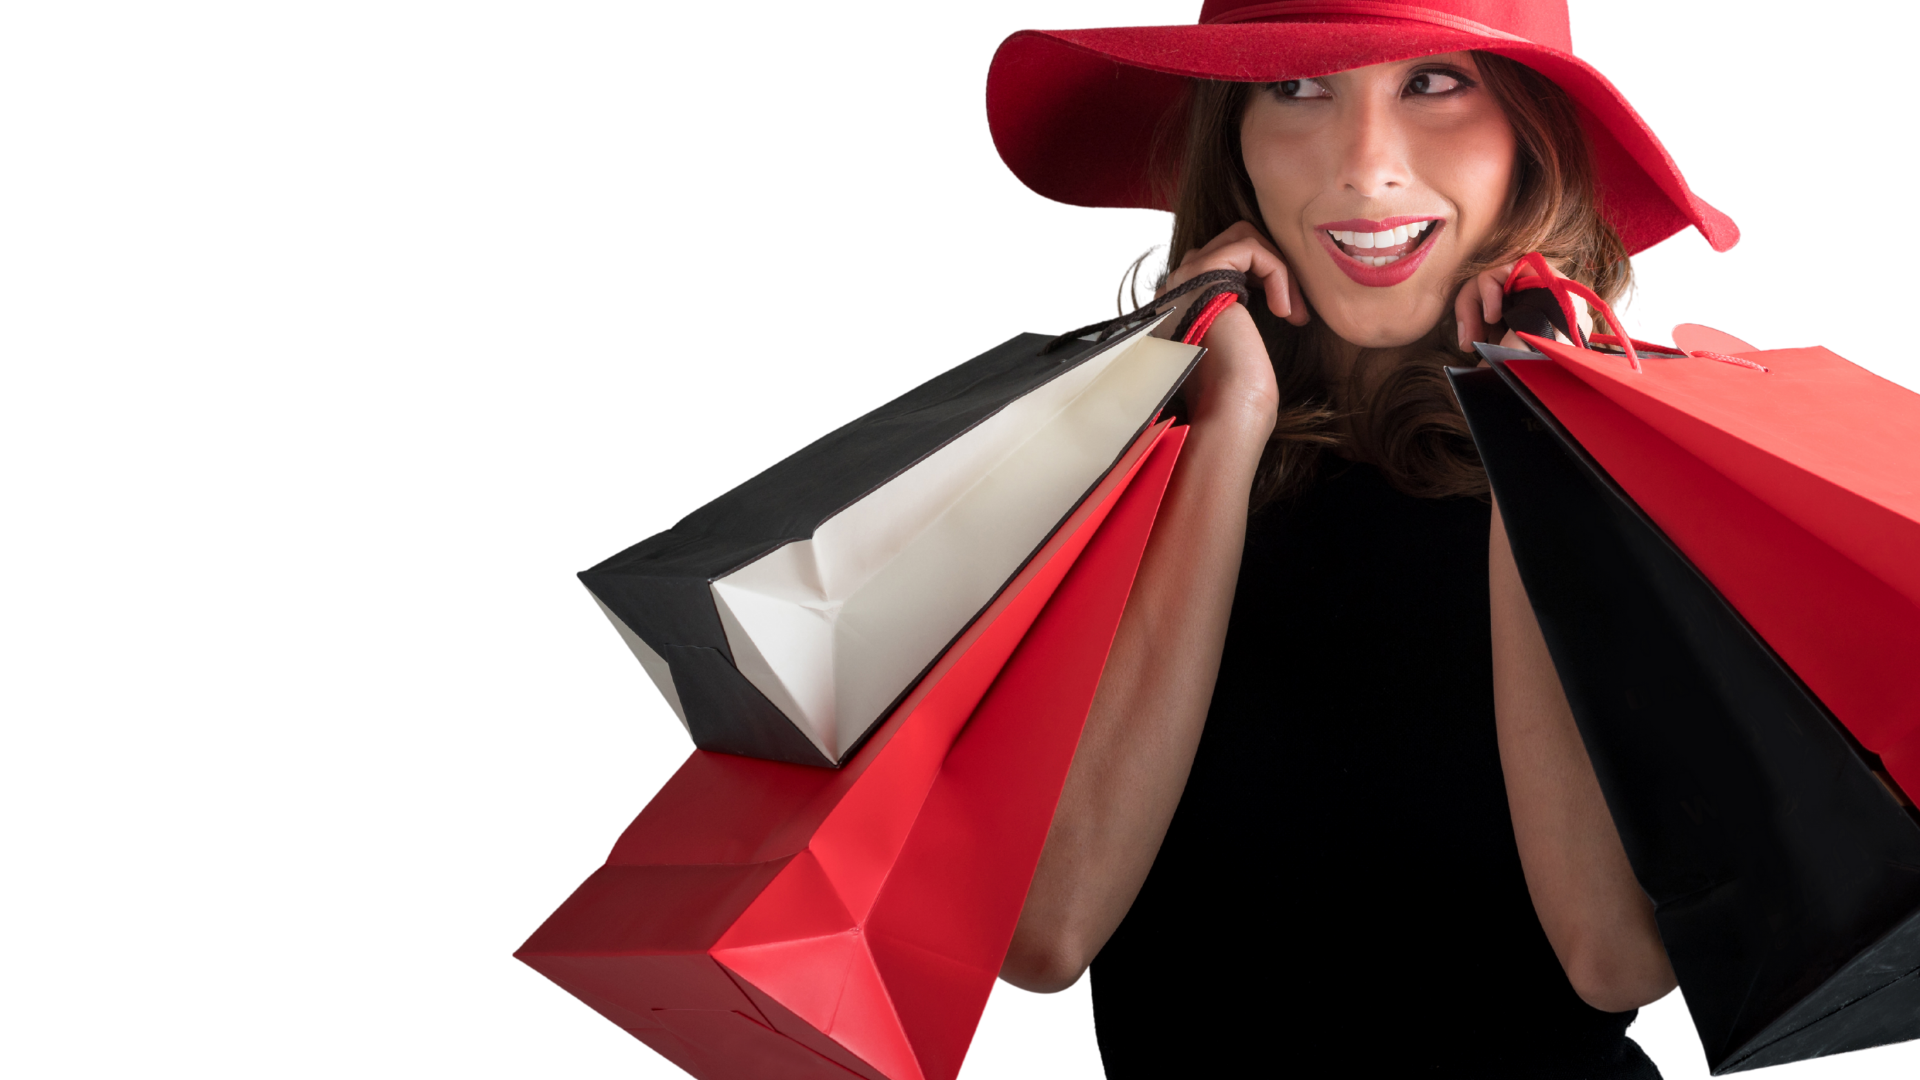 Shopping Lady in Red Hat